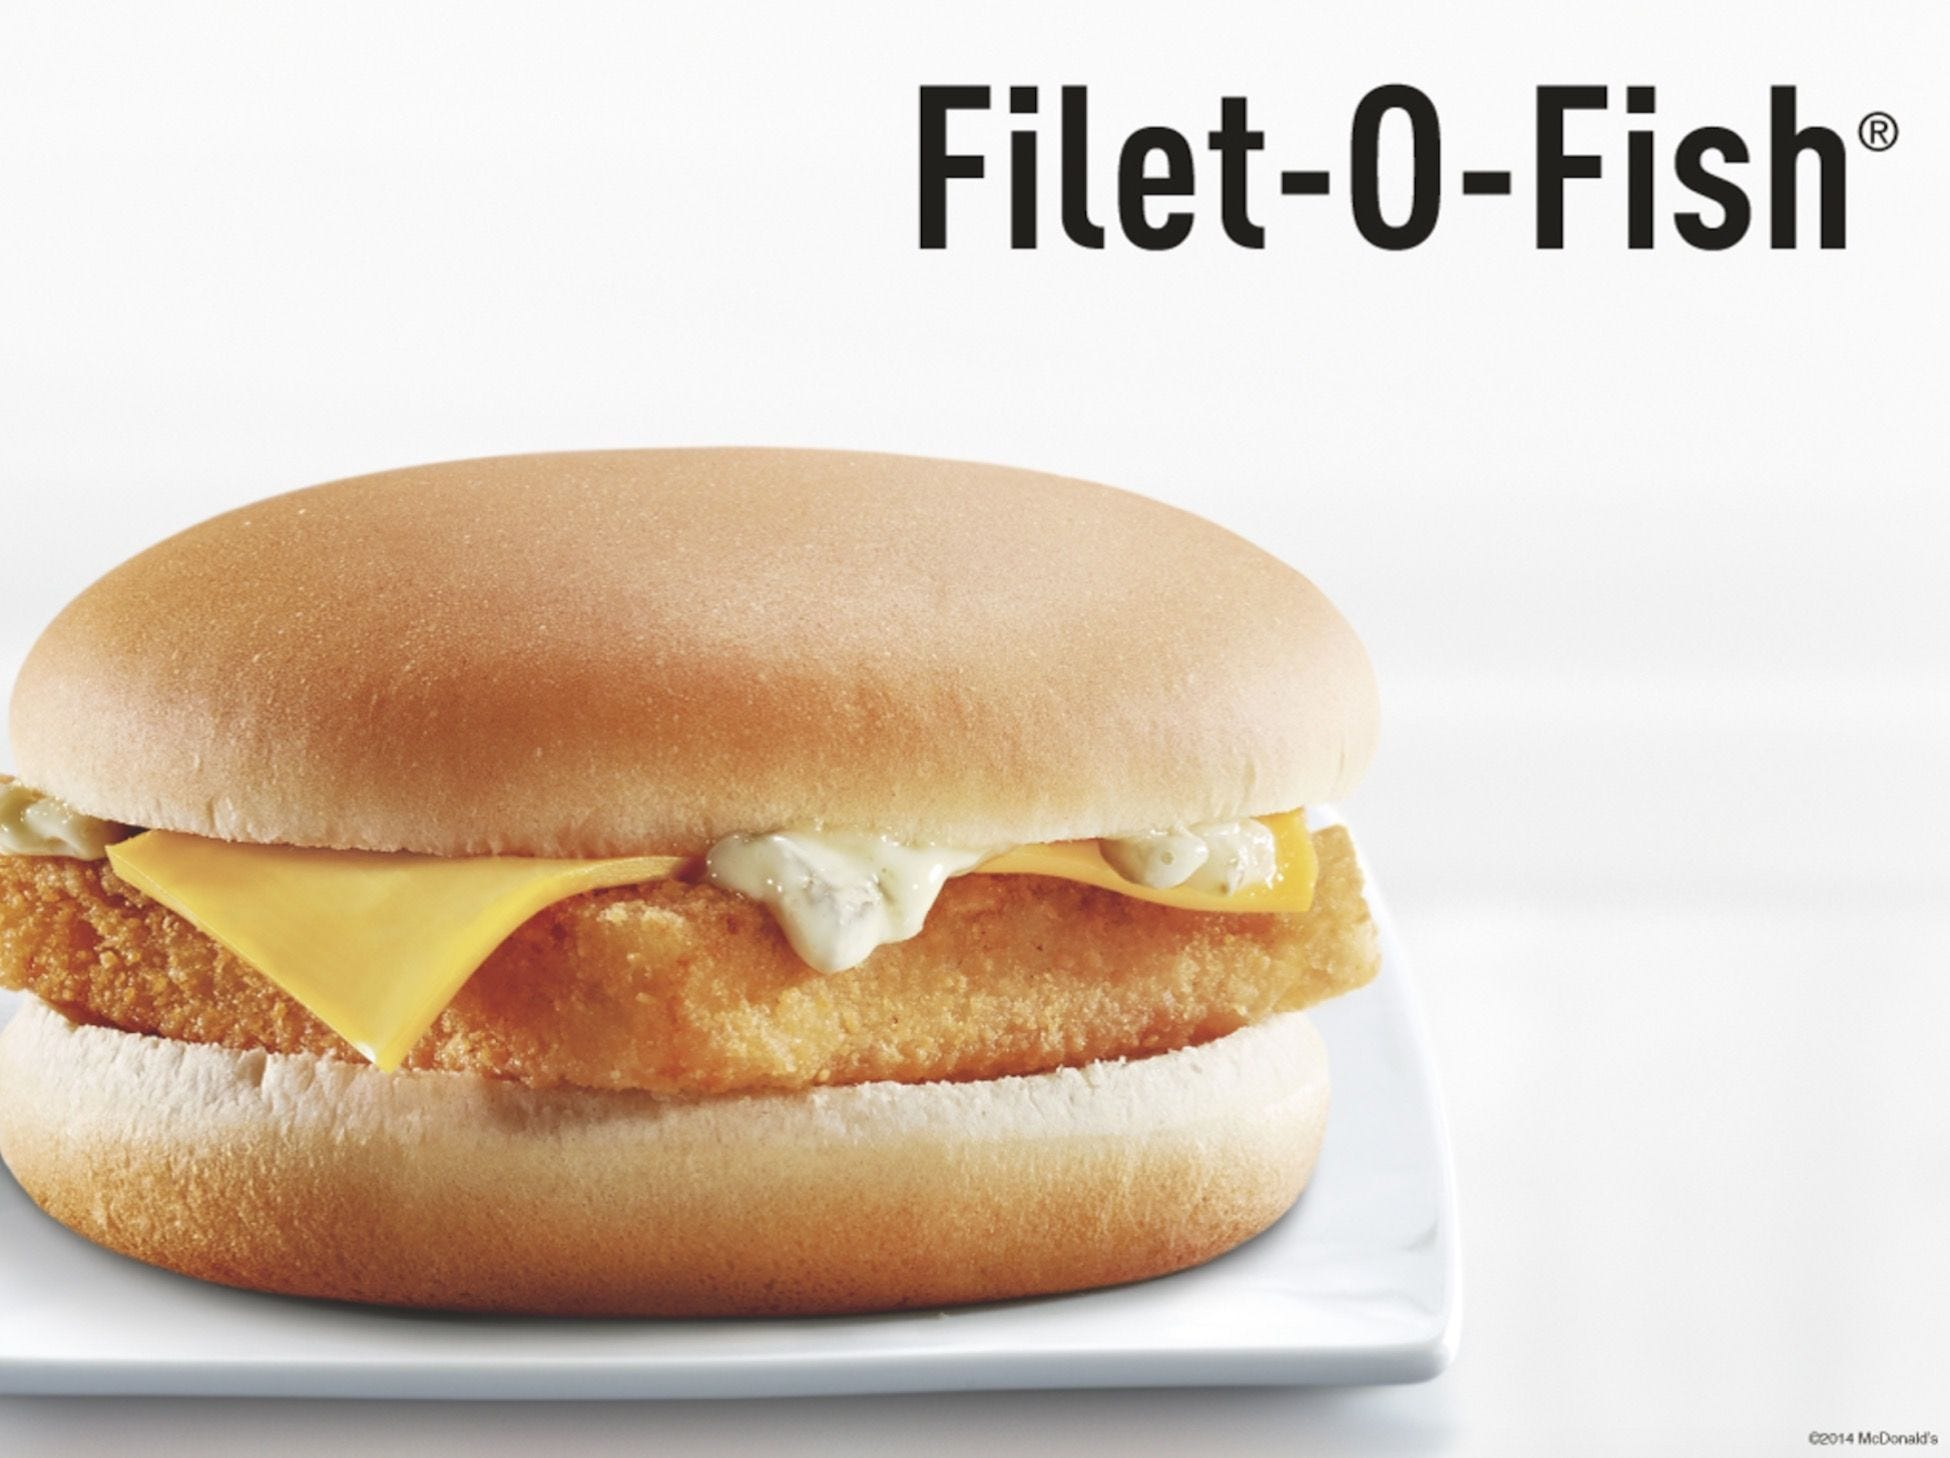 Why so many people are eating mcdonald 39 s filet o fish for Mcdonalds fish sandwich